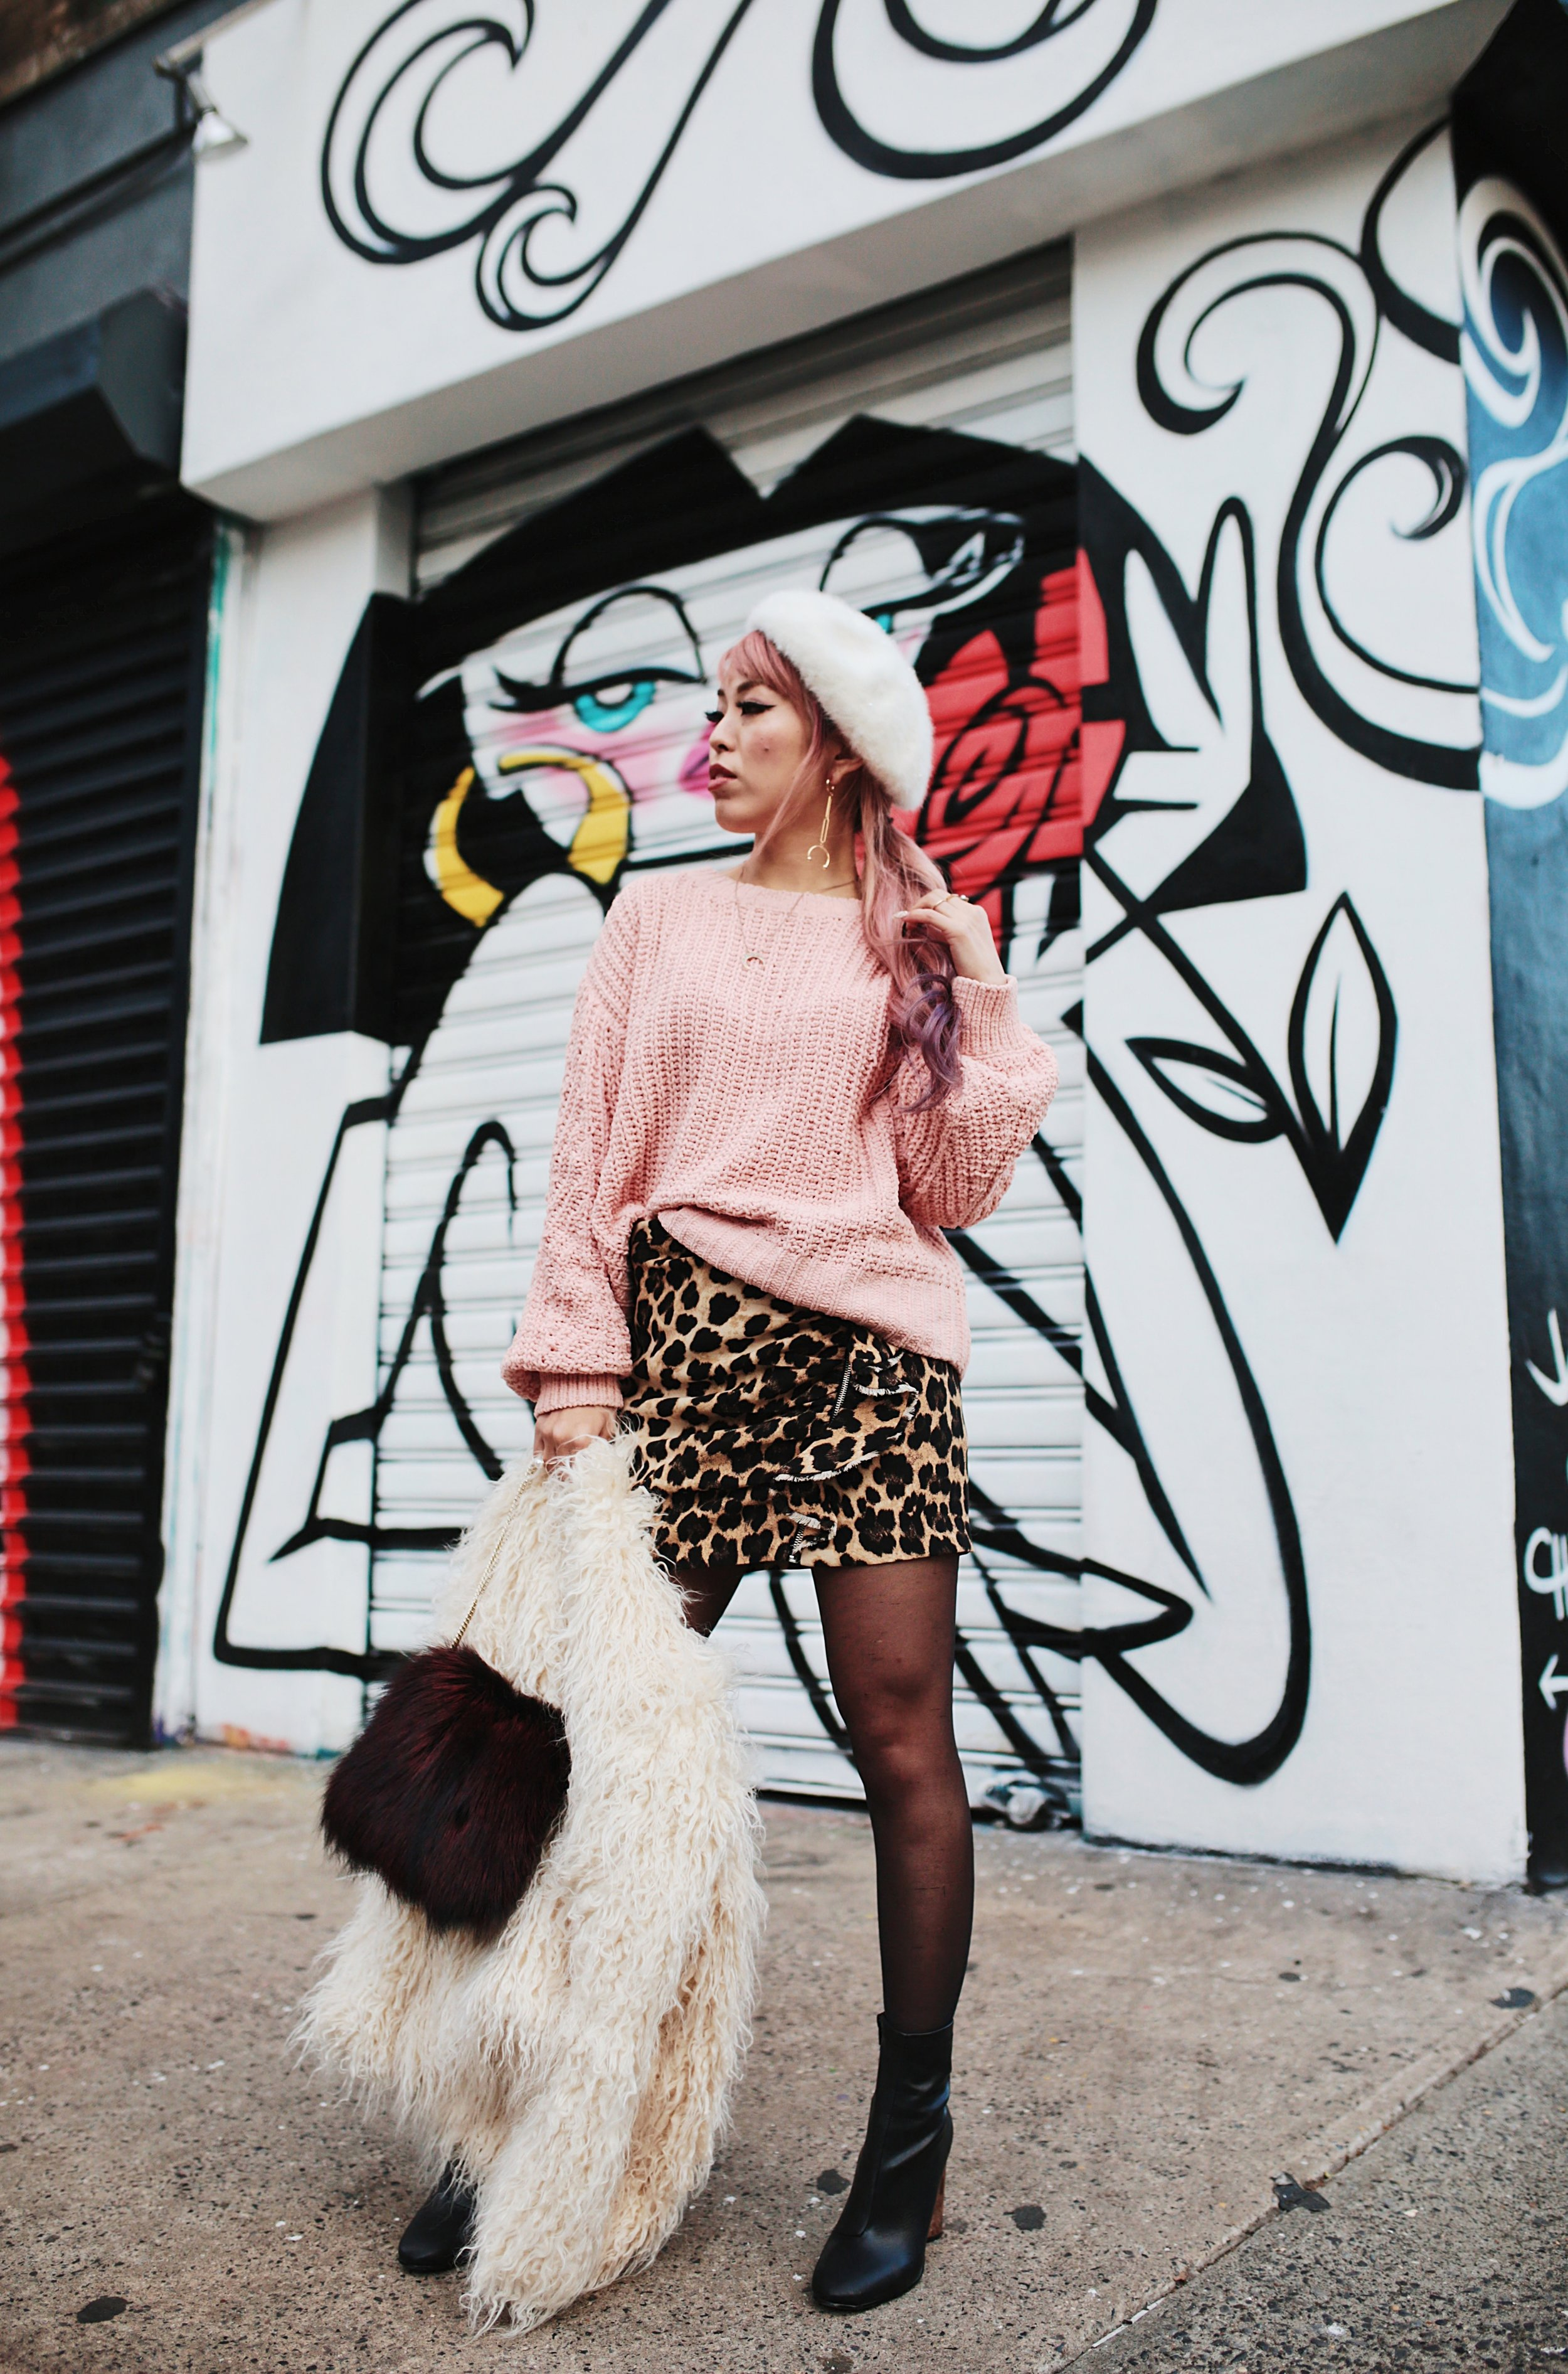 H&M Pink Sweater-Zara leopar prins mini skirt-H&M white shaggy coat-DVF fur bag-anthropologie white beret-Urban Outfitters Sunglasses-ALDO Ankle Boots-Mango Earrings-Aikas Love Closet-New York City-Pink Hair-Style Fashion Blogger-Seattle-Japanese_Petite fashion blogger 14